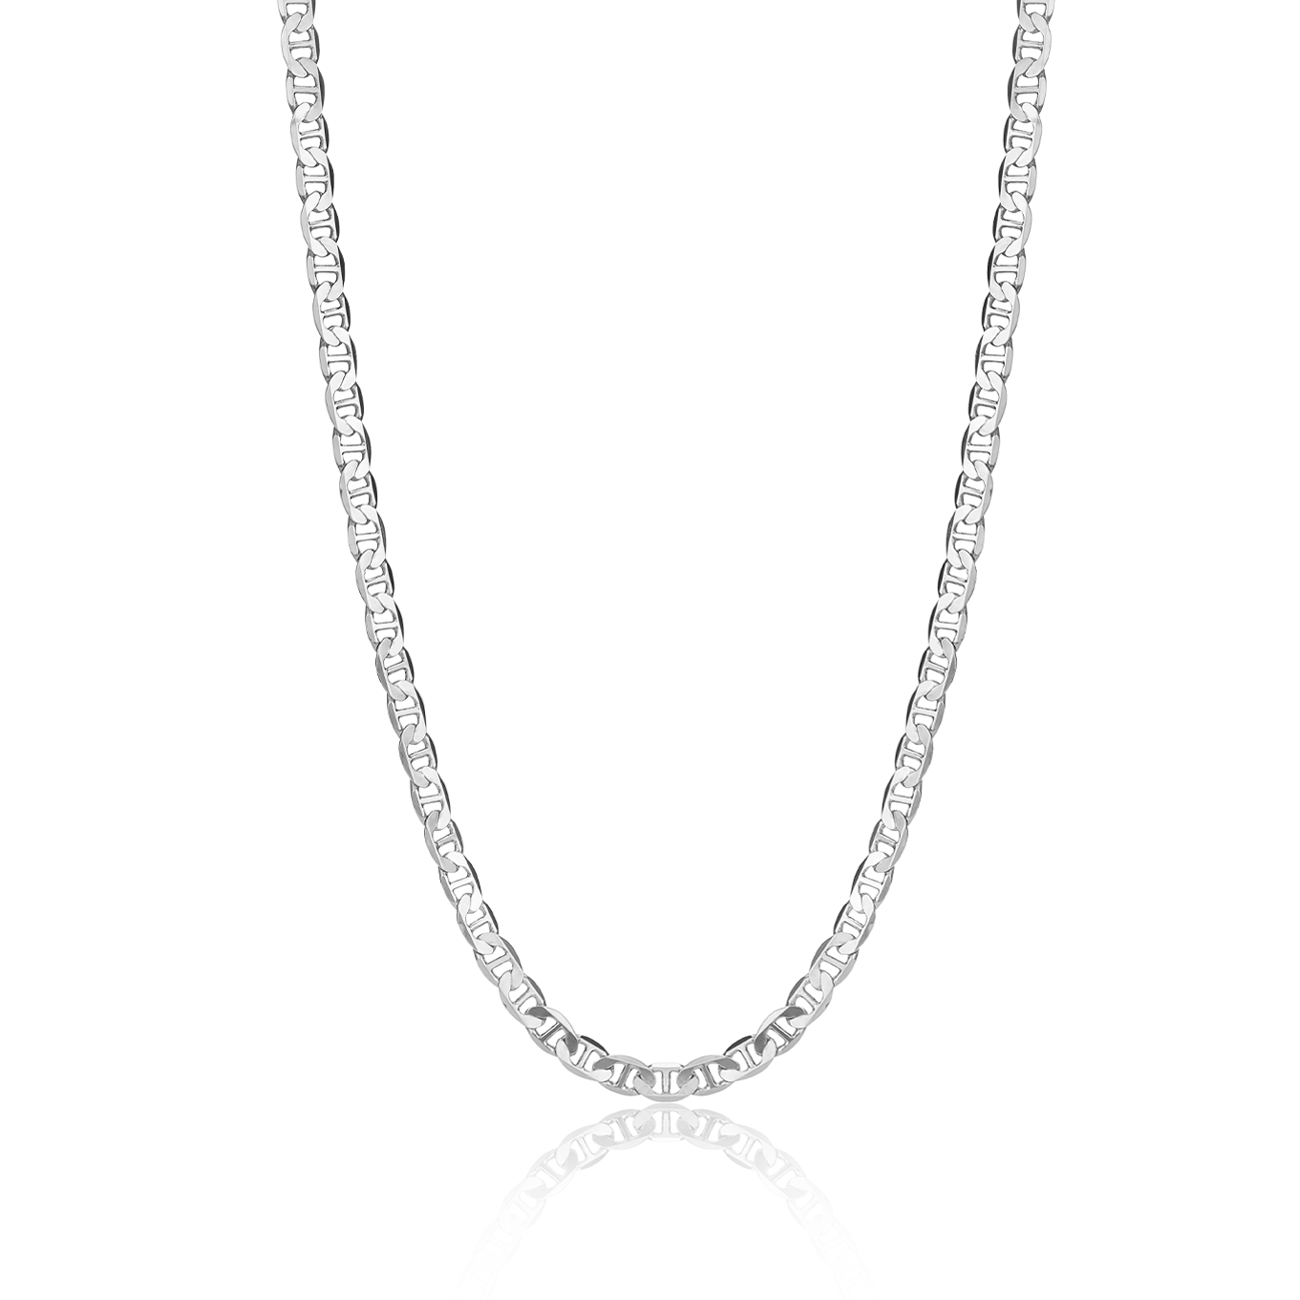 Bobbi Chain Necklace - Large